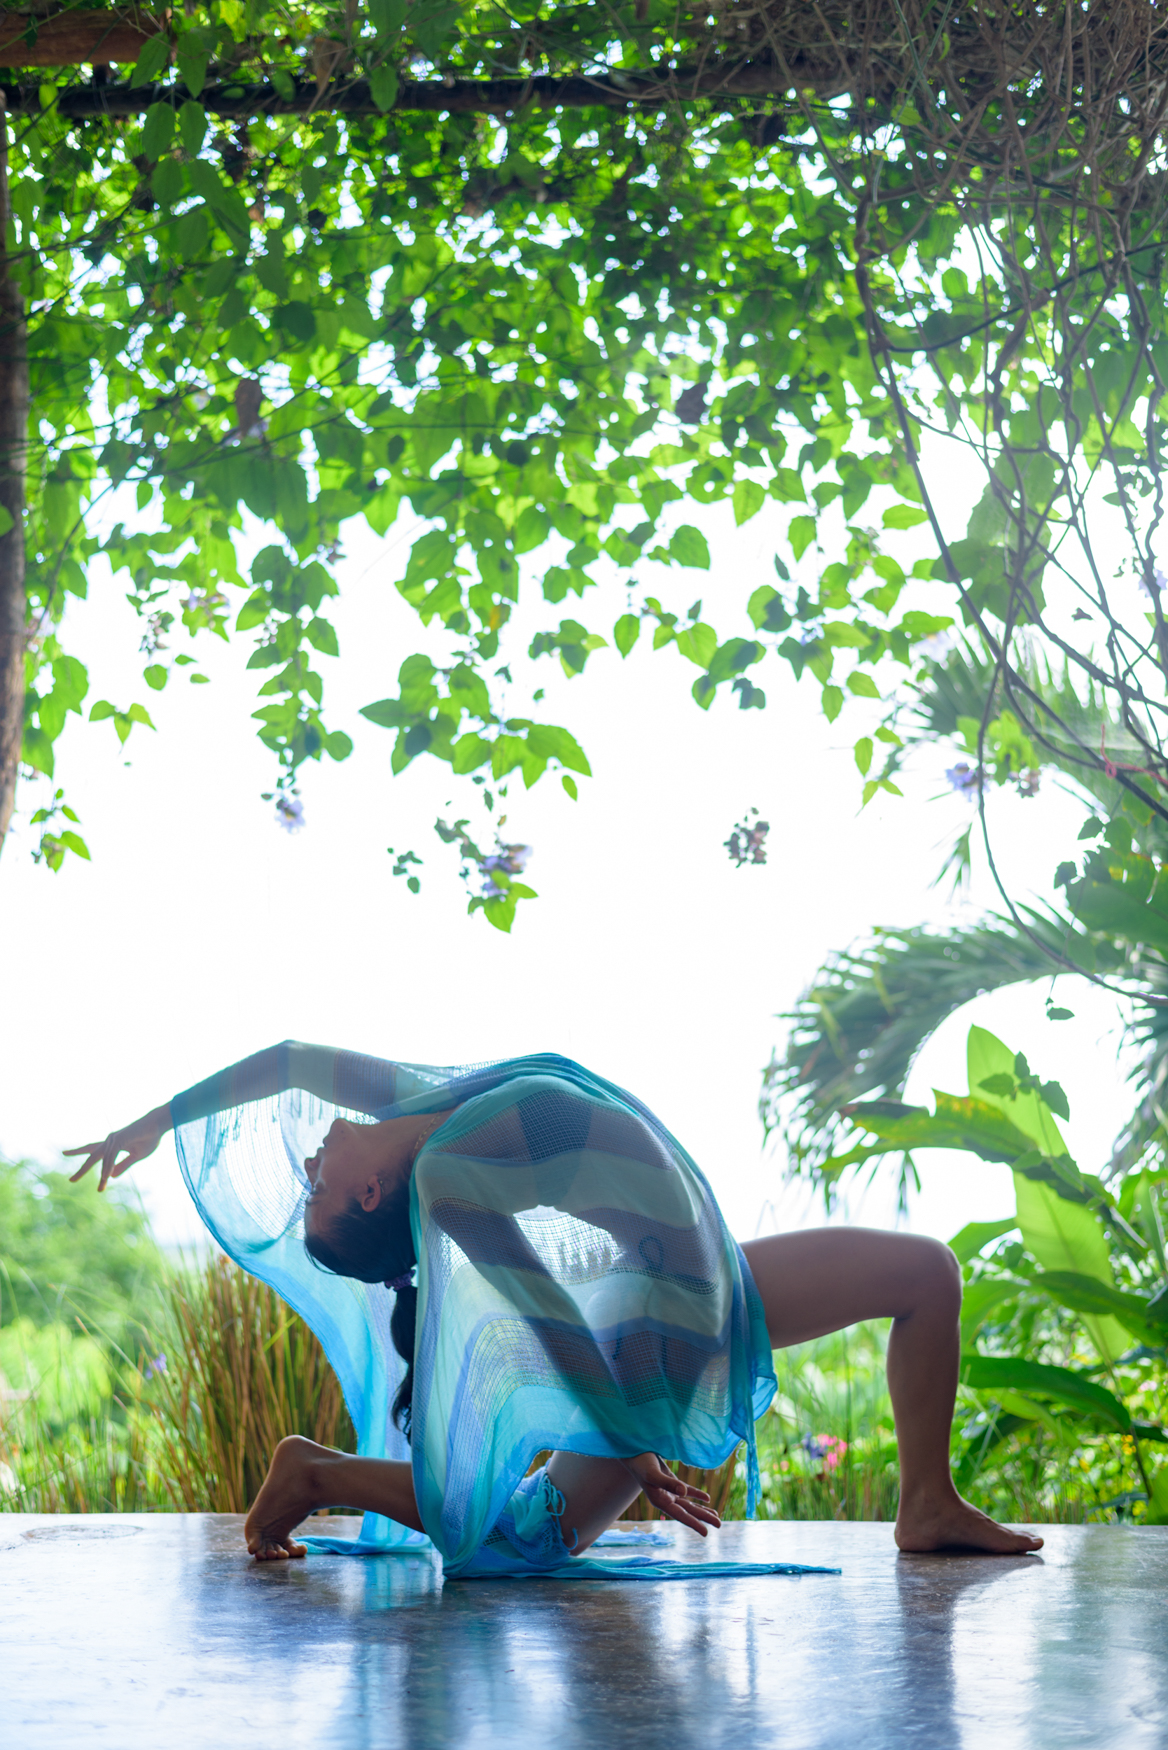 Yoga-Inspired-Practices-Photography-Costa-Rica-21.jpg